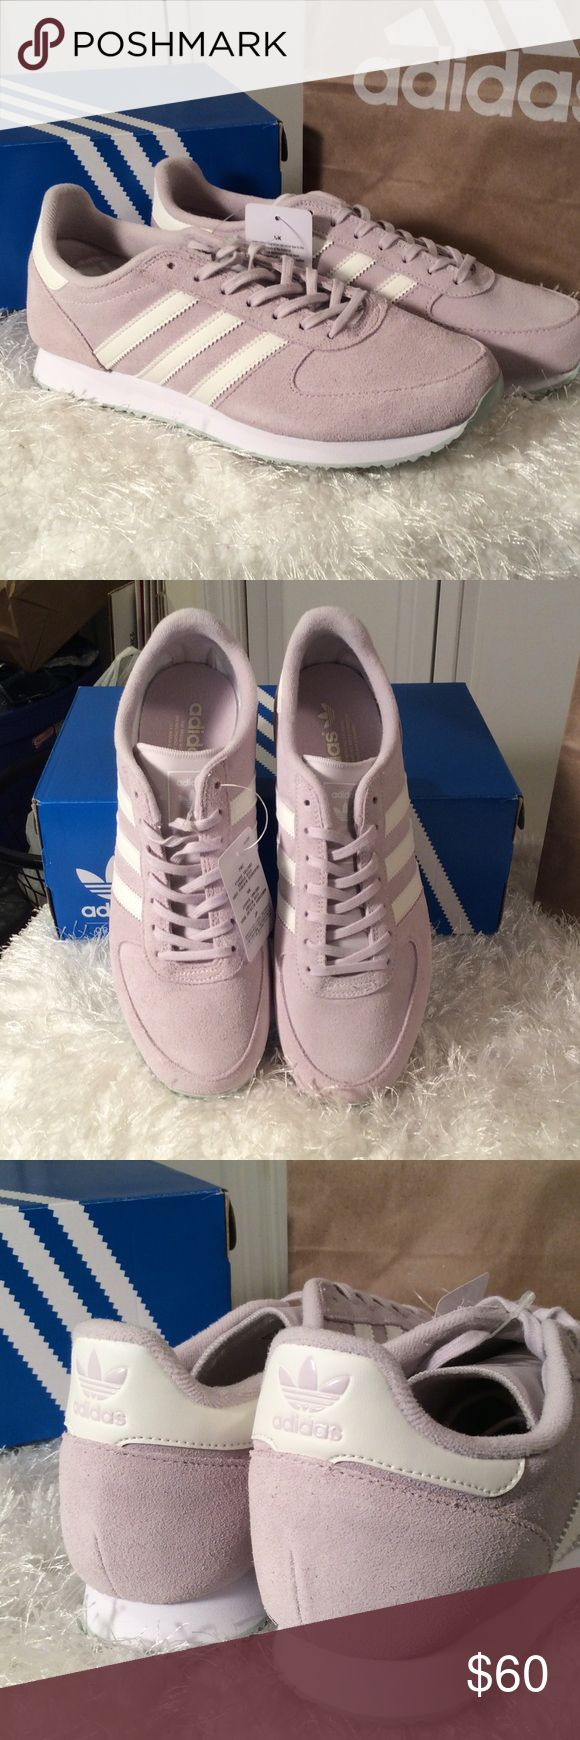 Adidas ZX Racer Lavender suede upper.  Teal sole. Brand new in box Adidas Shoes Sneakers